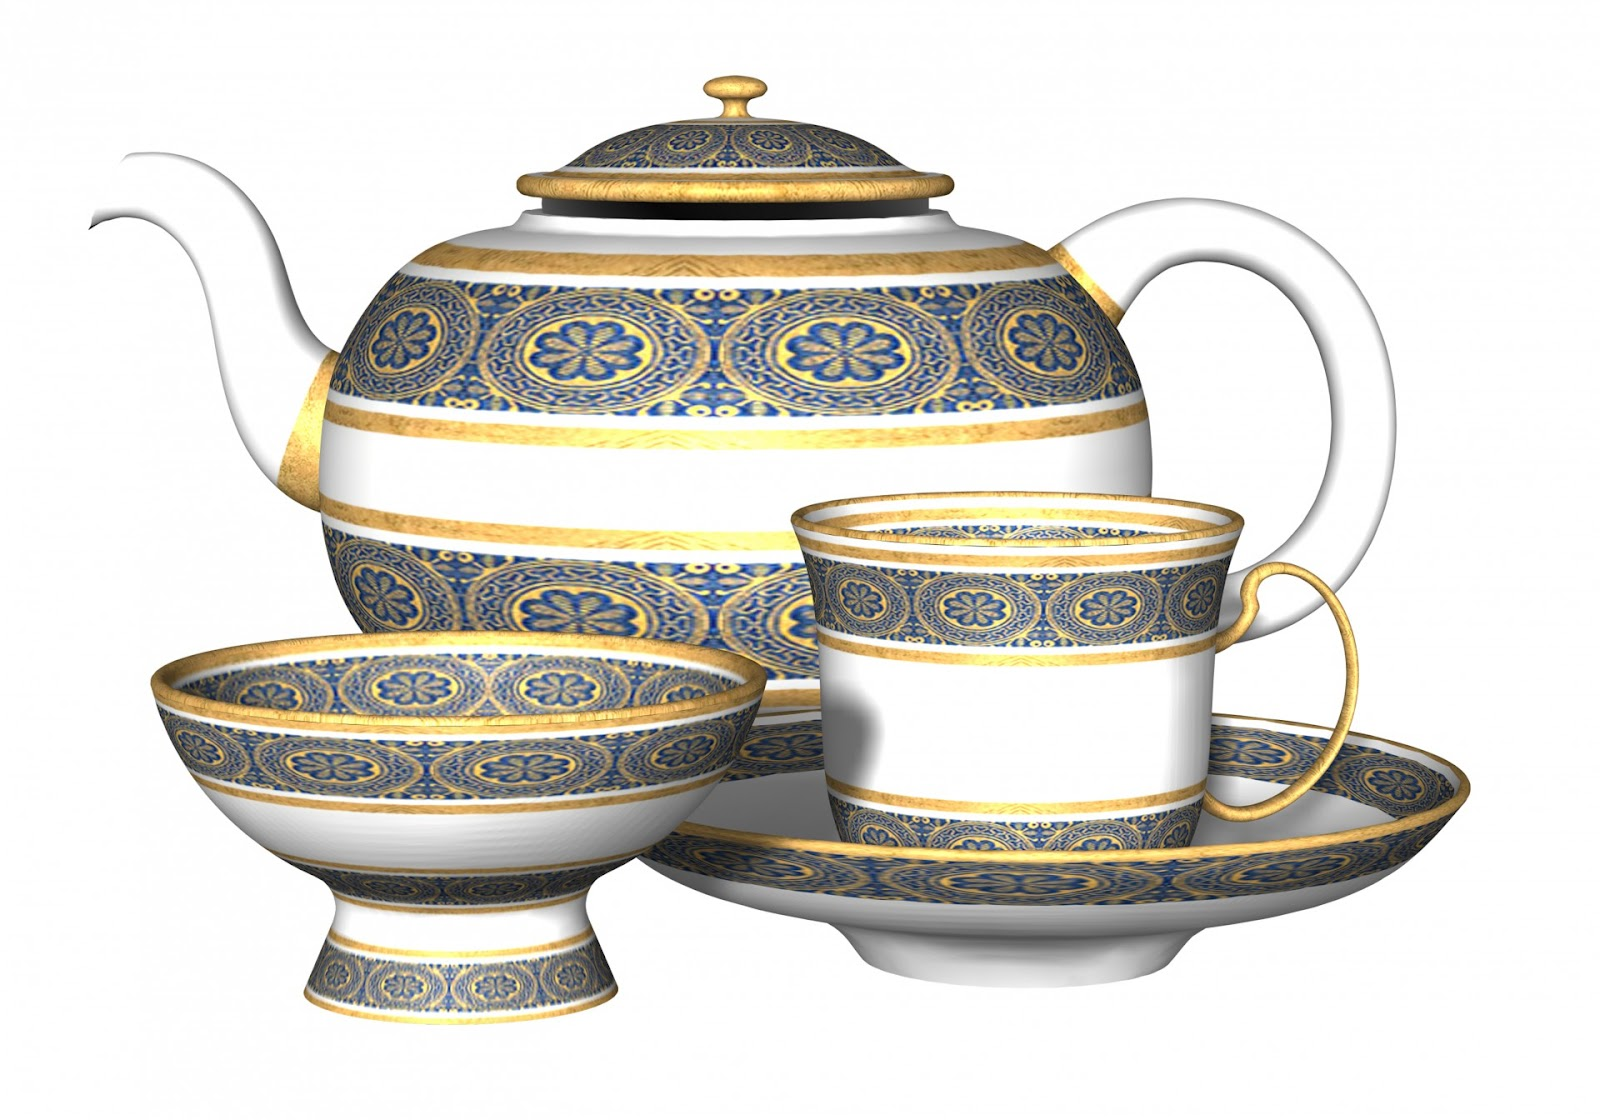 Image result for tea set